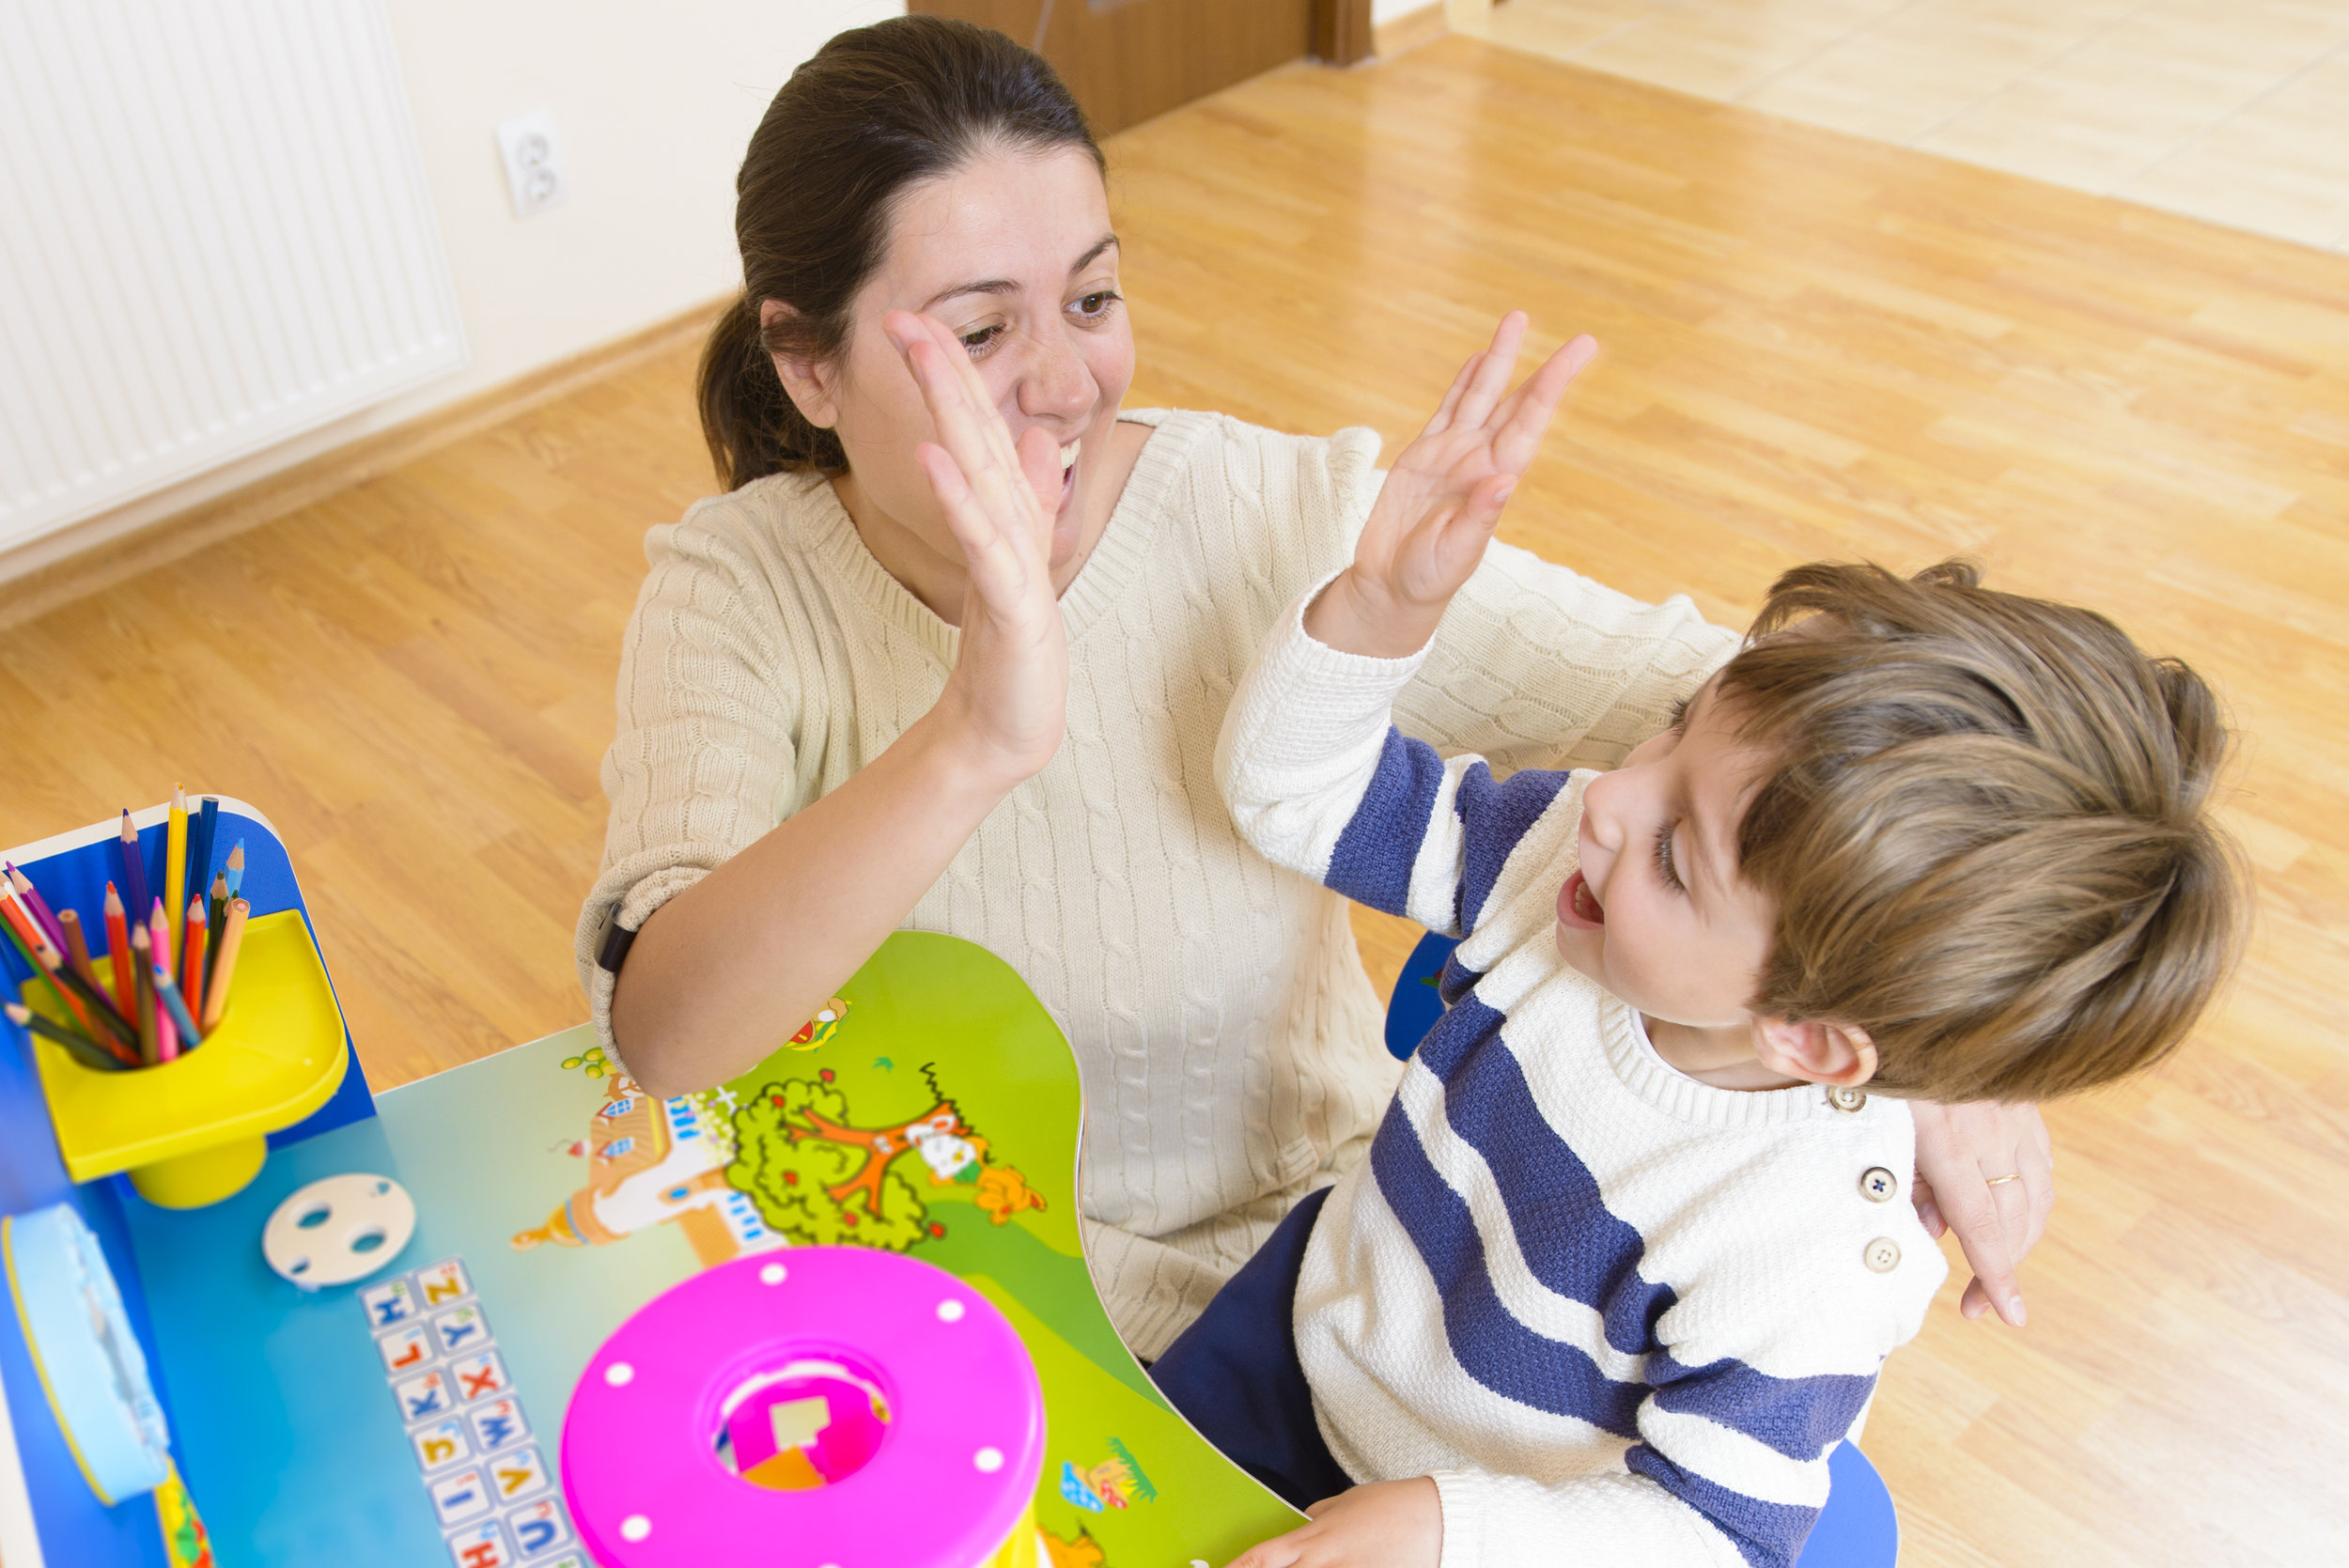 bigstock-Mother-Playing-With-Her-Child--78451958.jpg